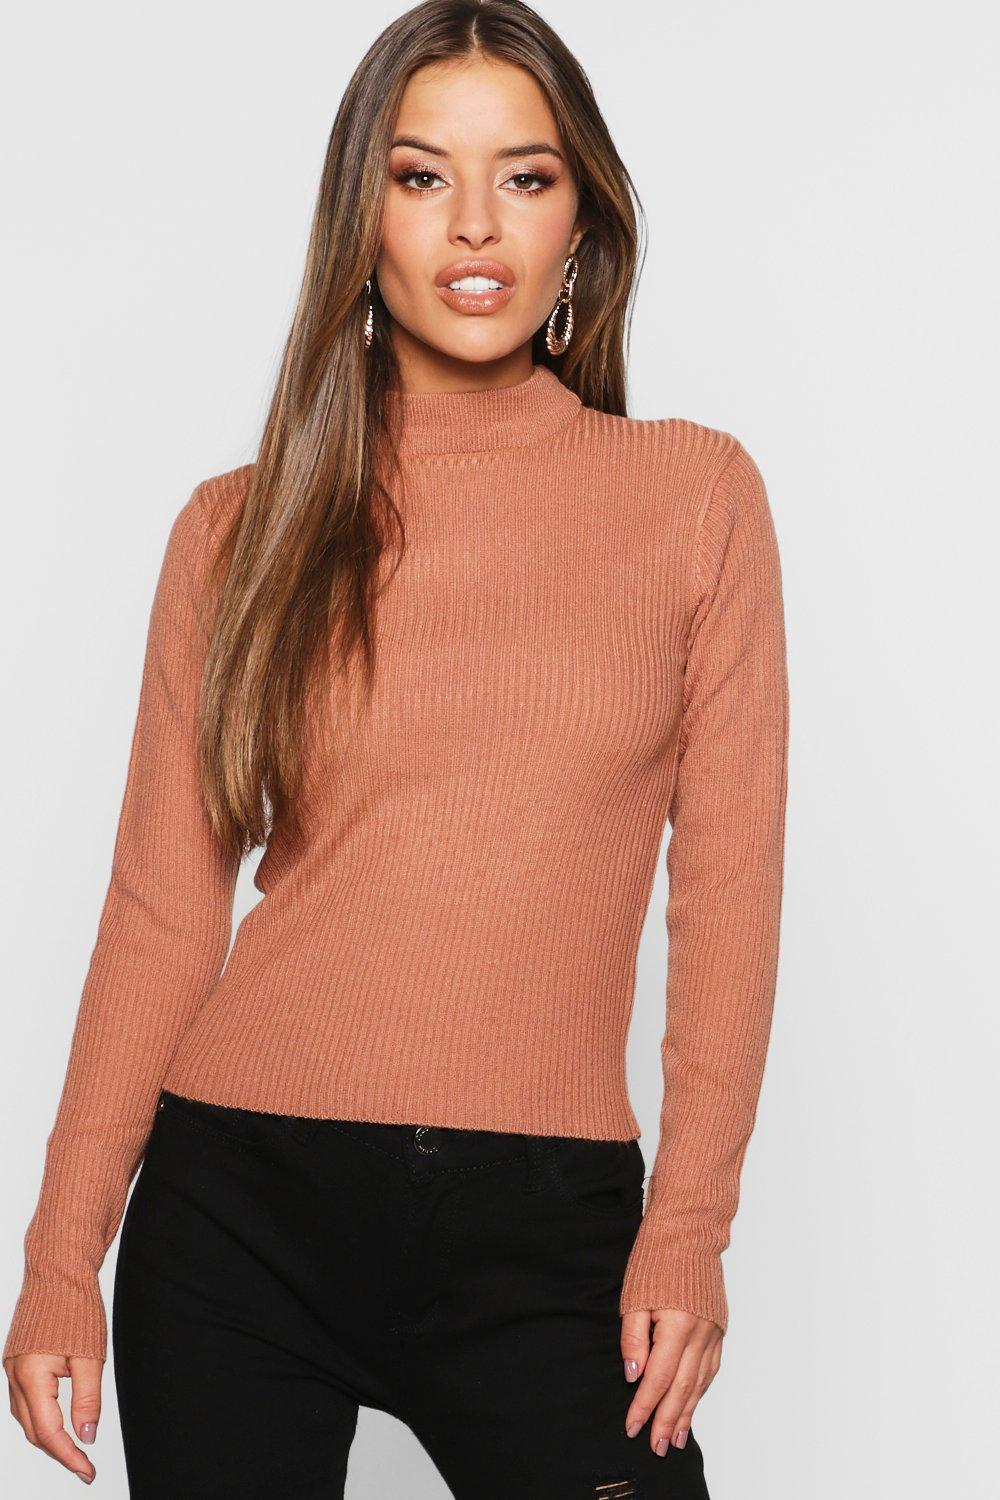 Womens Petite Ribbed Roll Neck Jumper - terracotta - XS, Terracotta - Boohoo.com